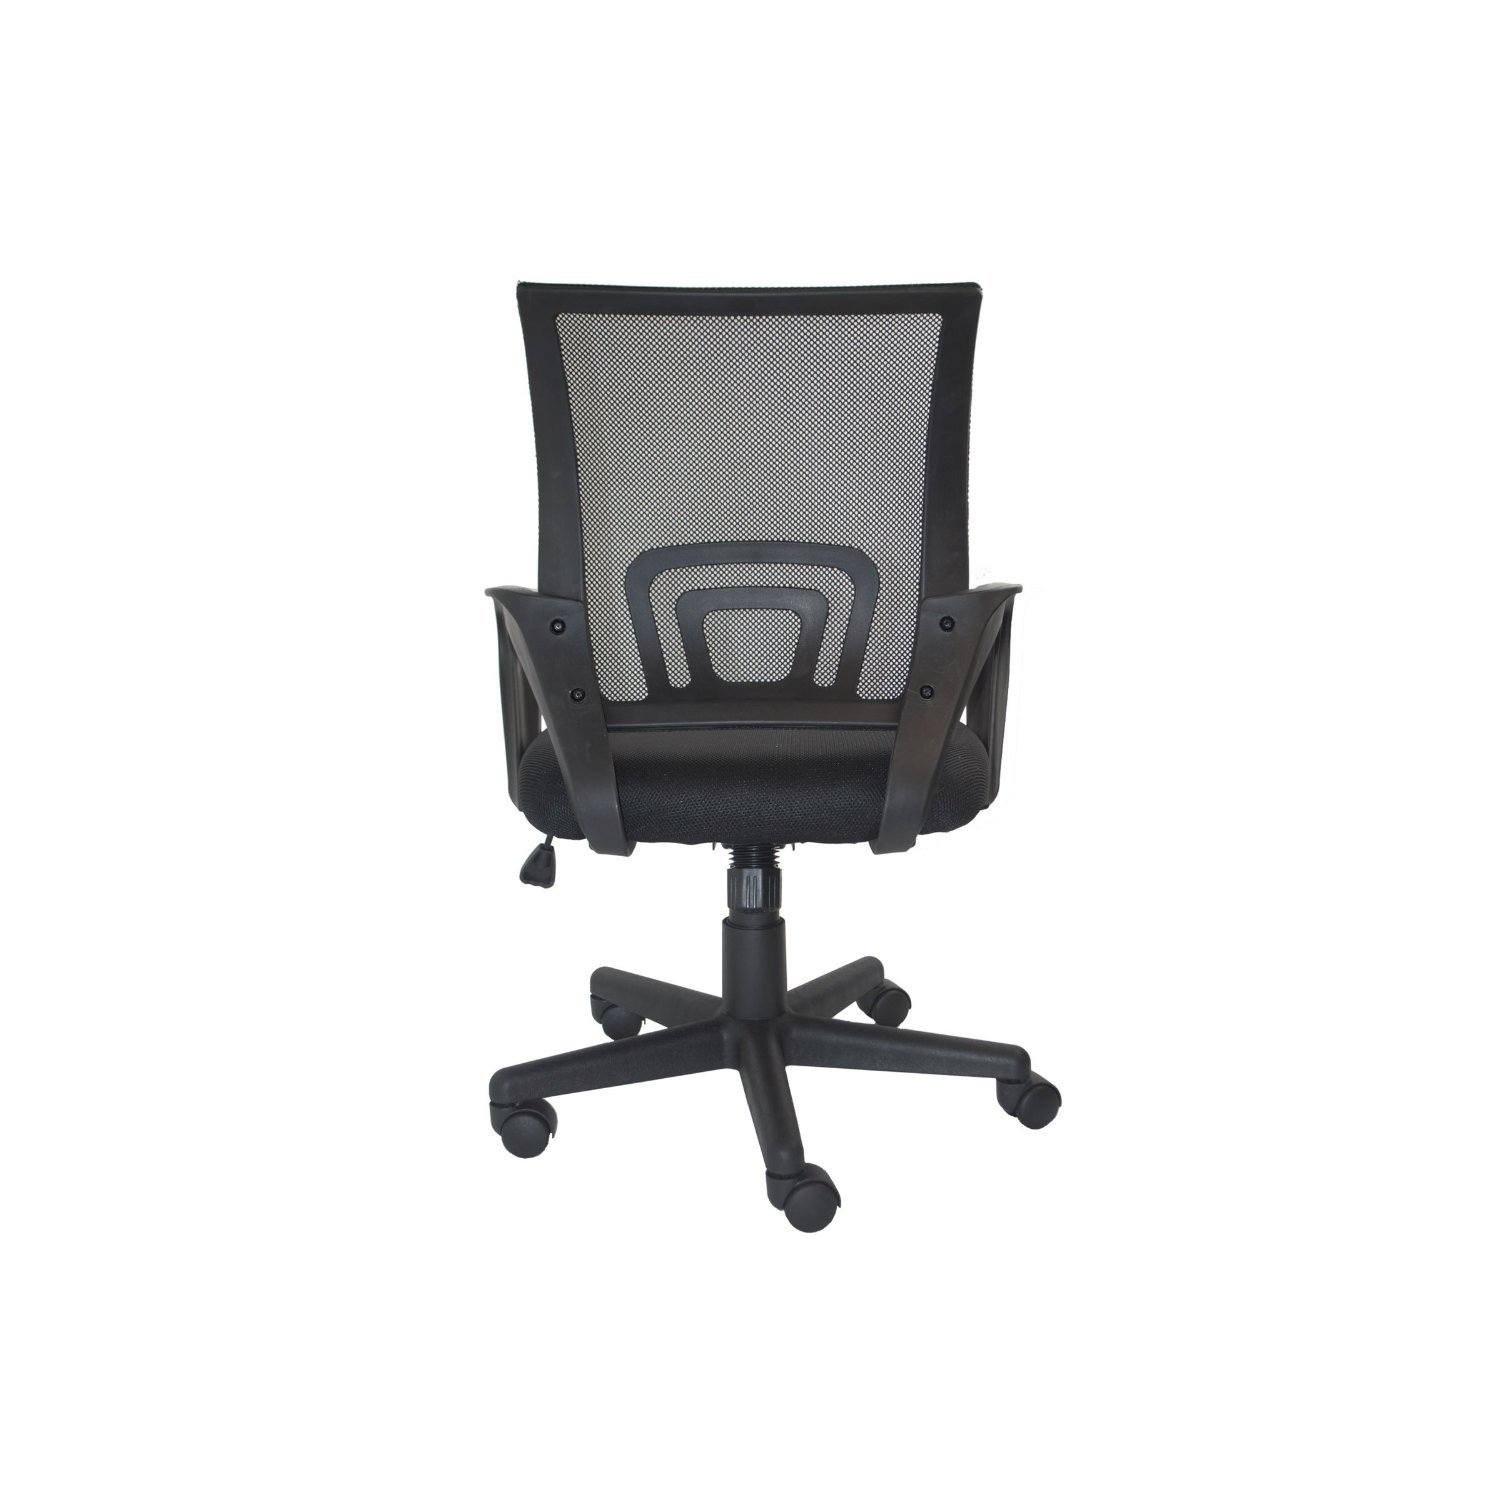 Amazon ALEKO ALCM813BL Ergonomic fice Chair High Back Mesh